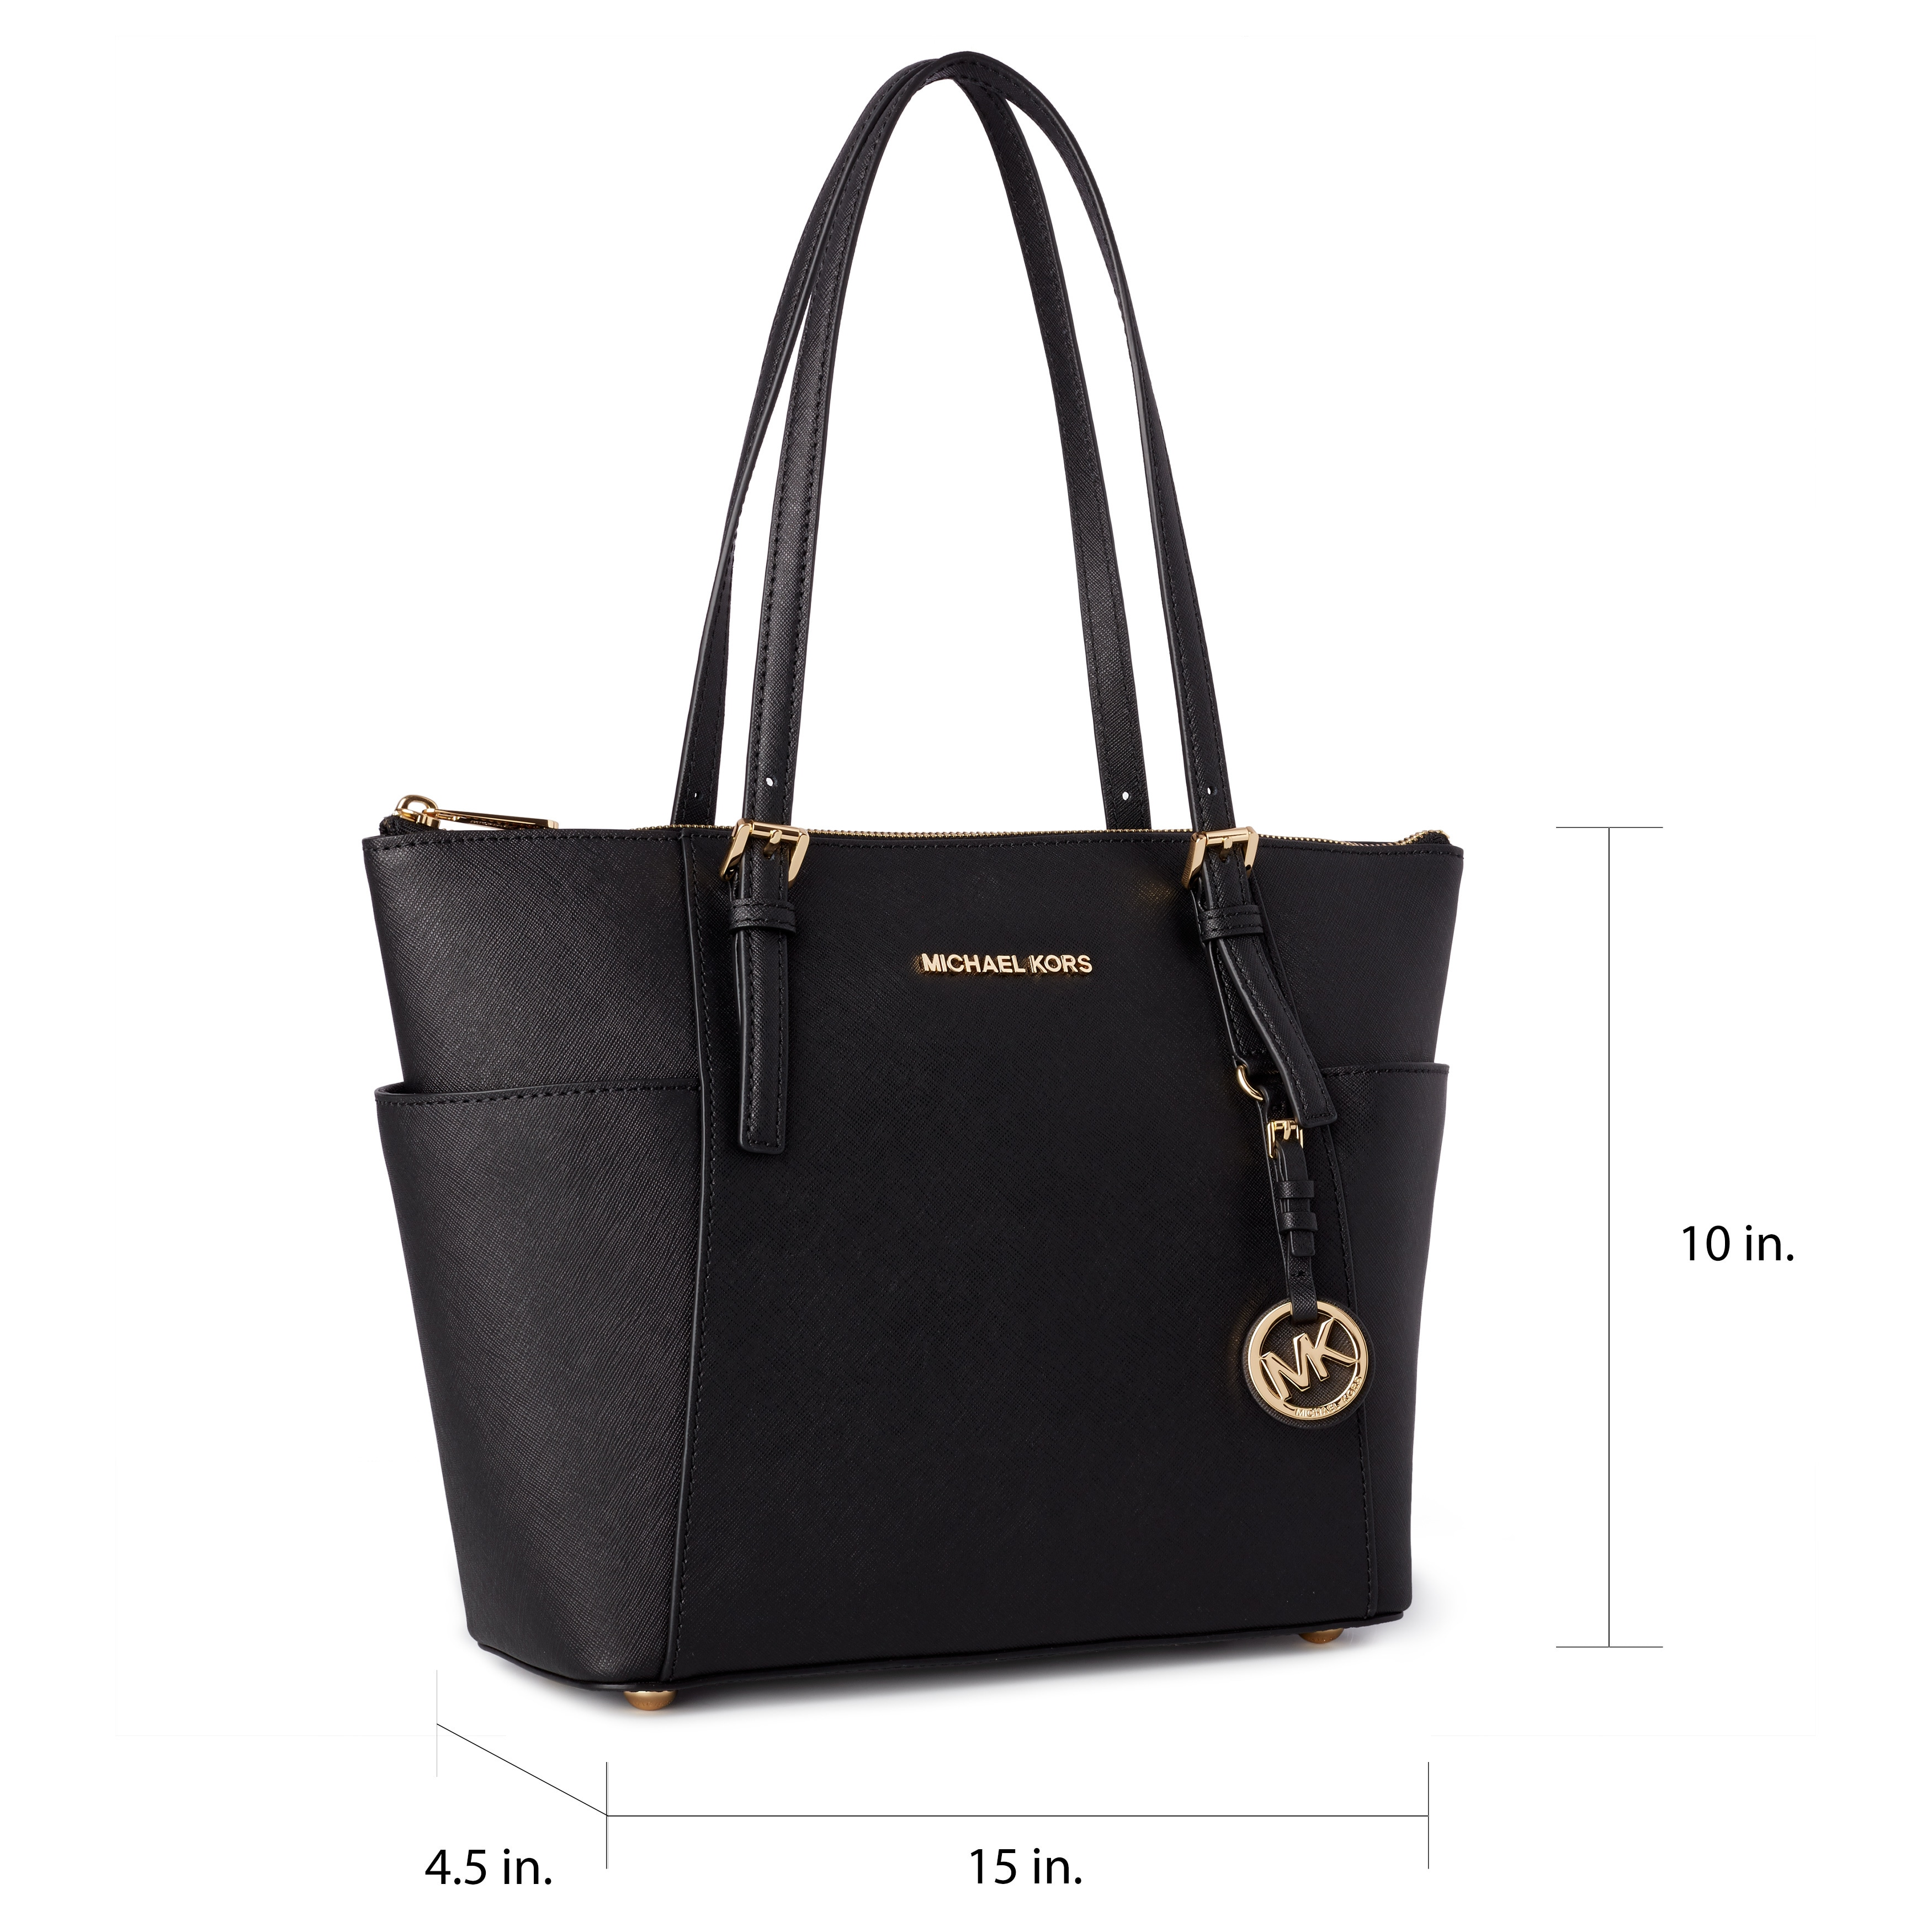 98382cad9e1f Shop Michael Kors Jet Set Medium Pocketed Top Zip Tote Bag - Free Shipping  Today - Overstock - 9167184